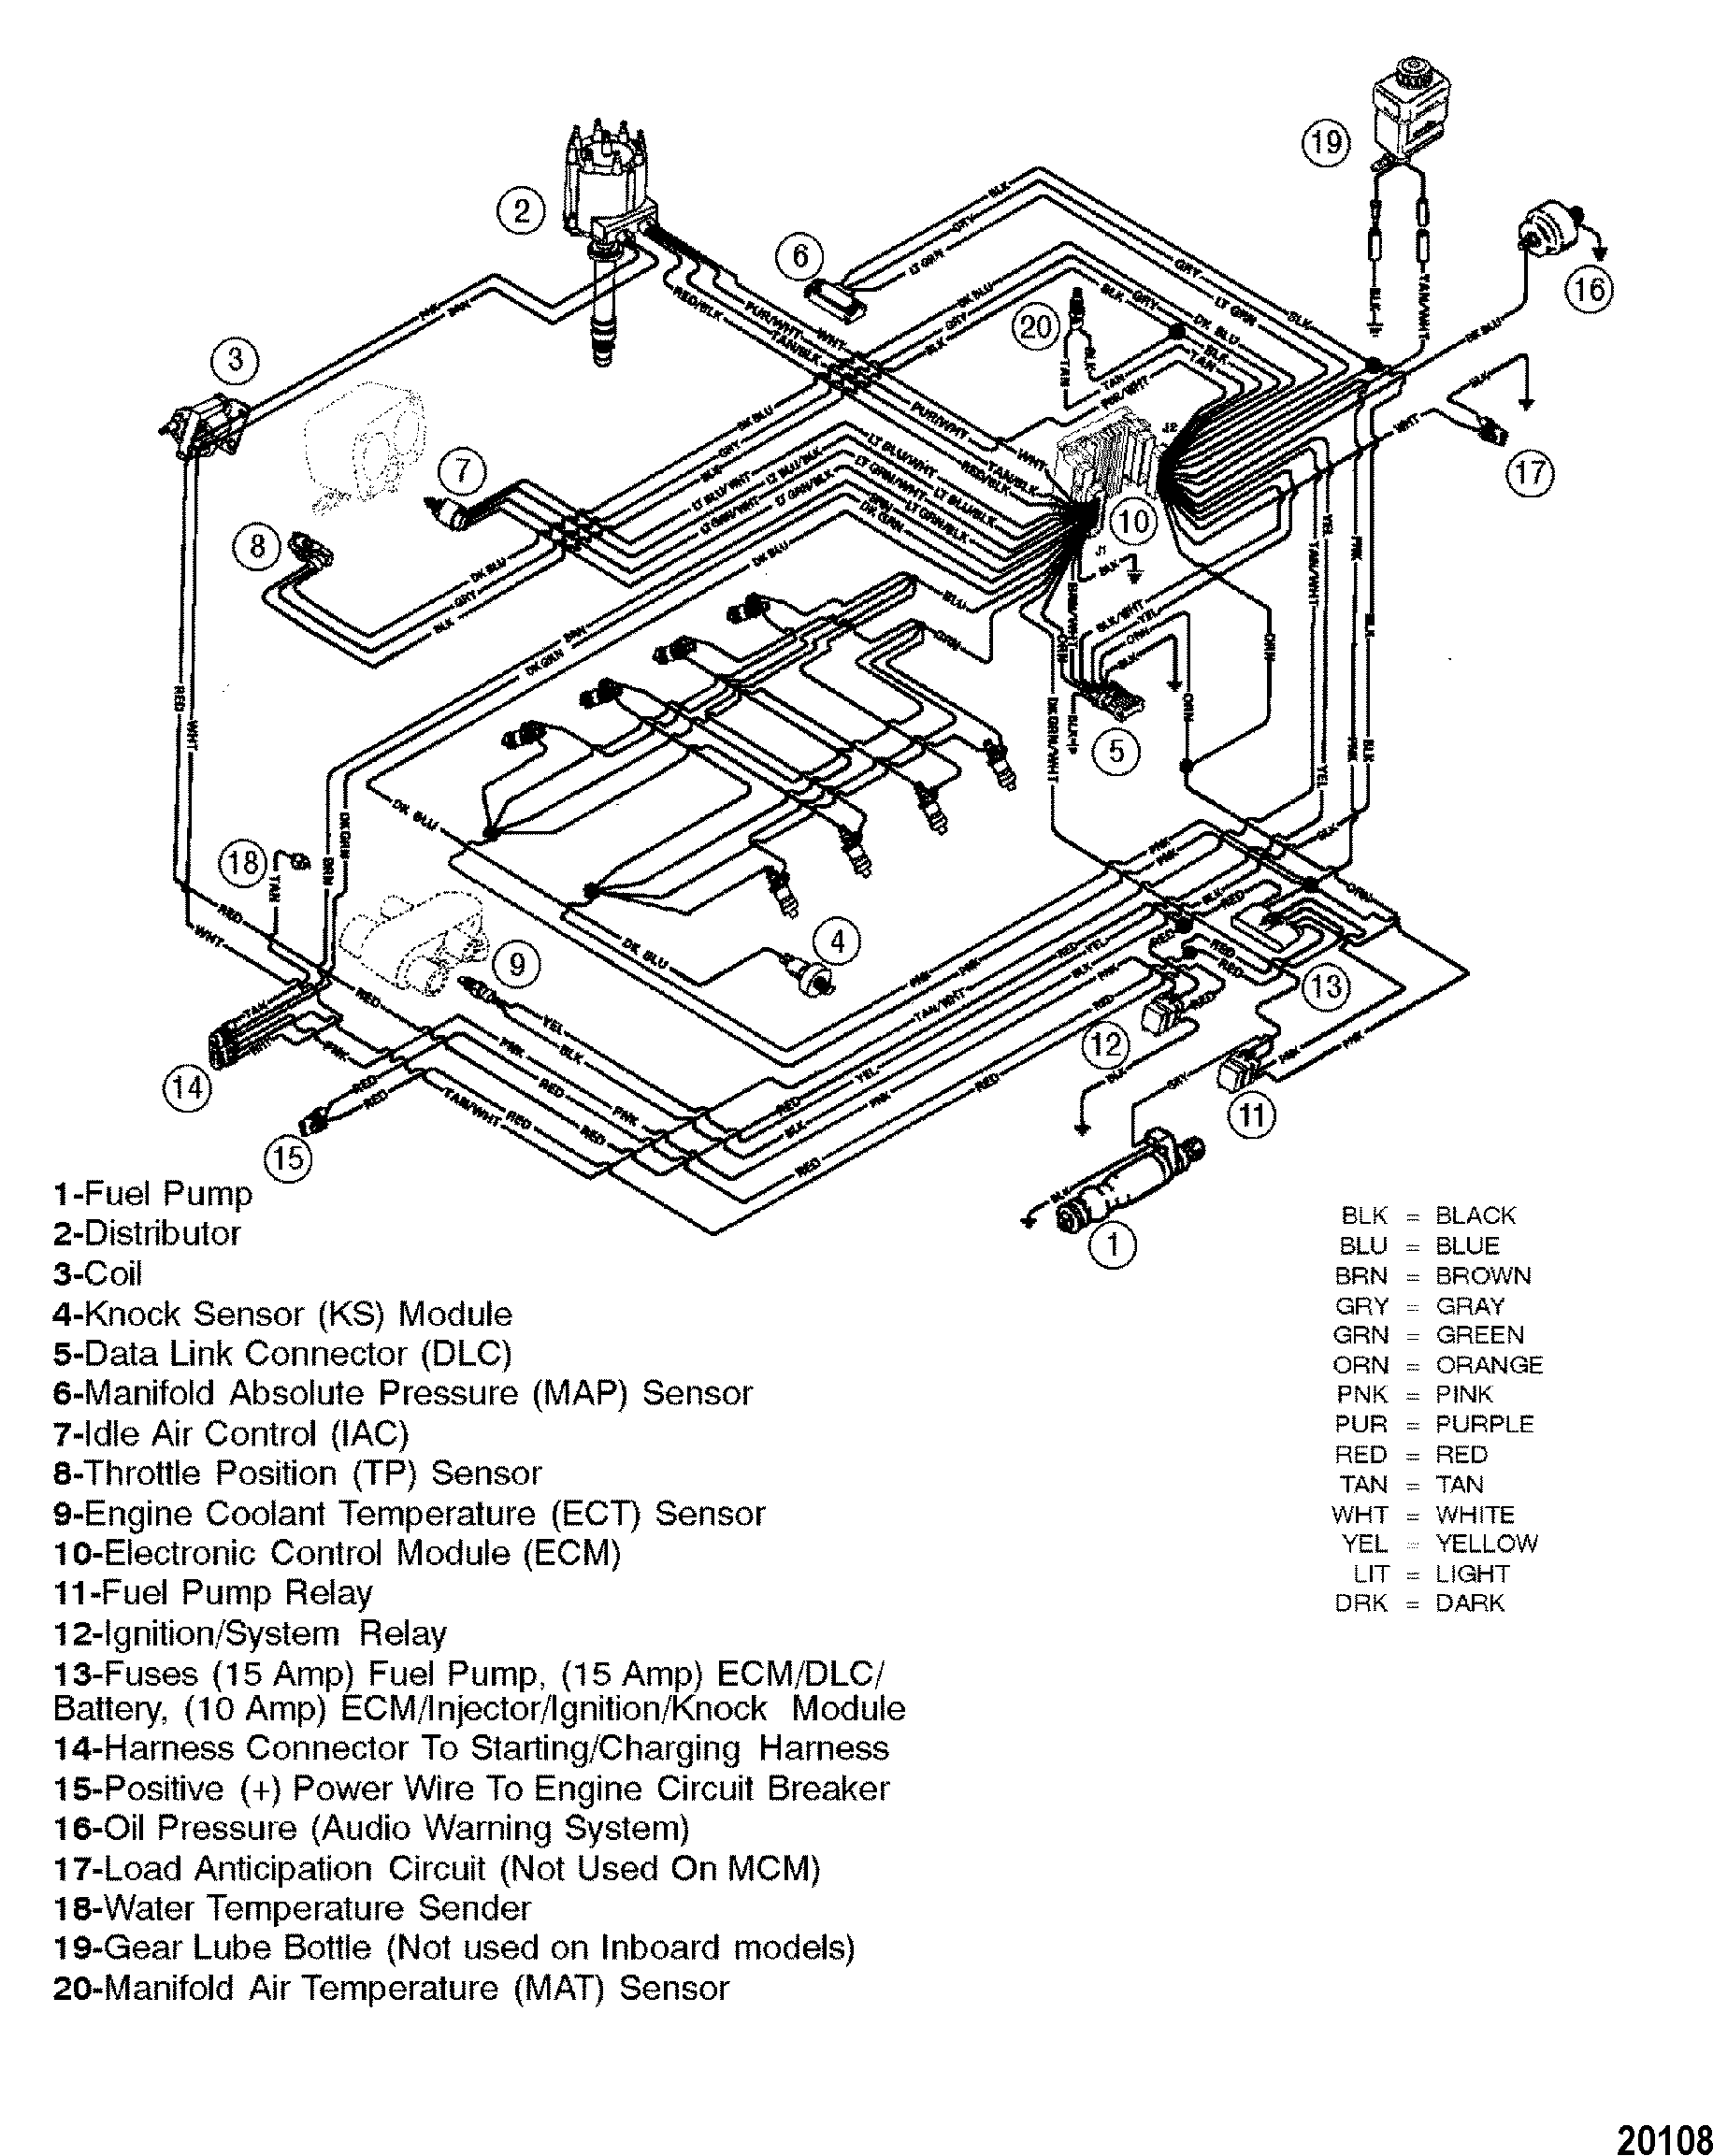 20108 mercruiser 5 7 wiring diagram 5 7 engine diagram \u2022 wiring diagrams Mercury Boat Instrument Panel Wiring Diagrams at edmiracle.co